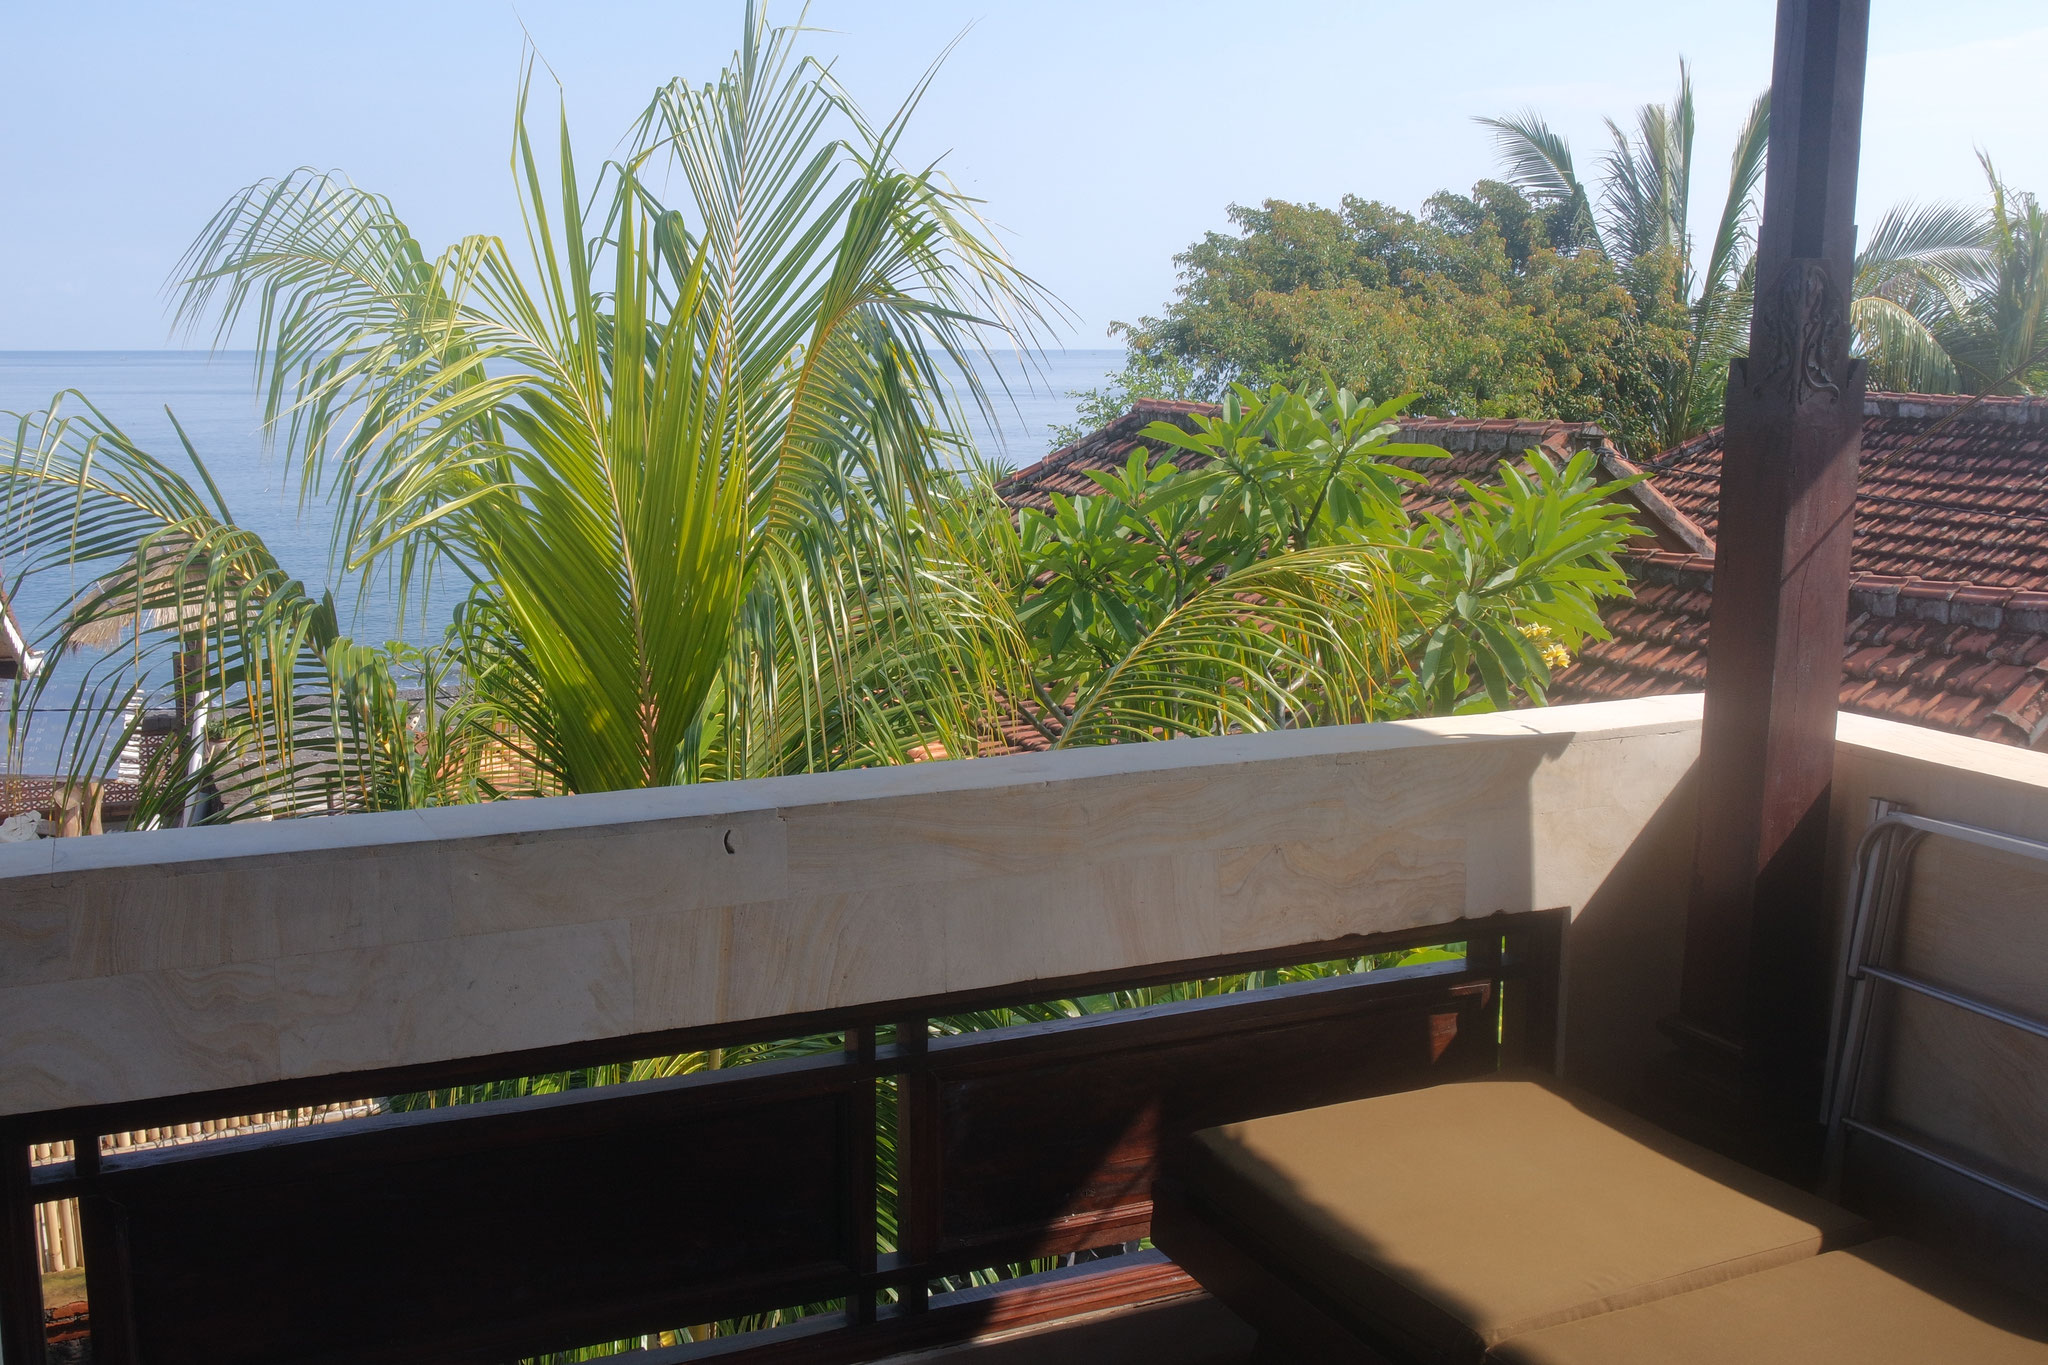 Bulih Beach Bungalows - Room 3 / Sea View